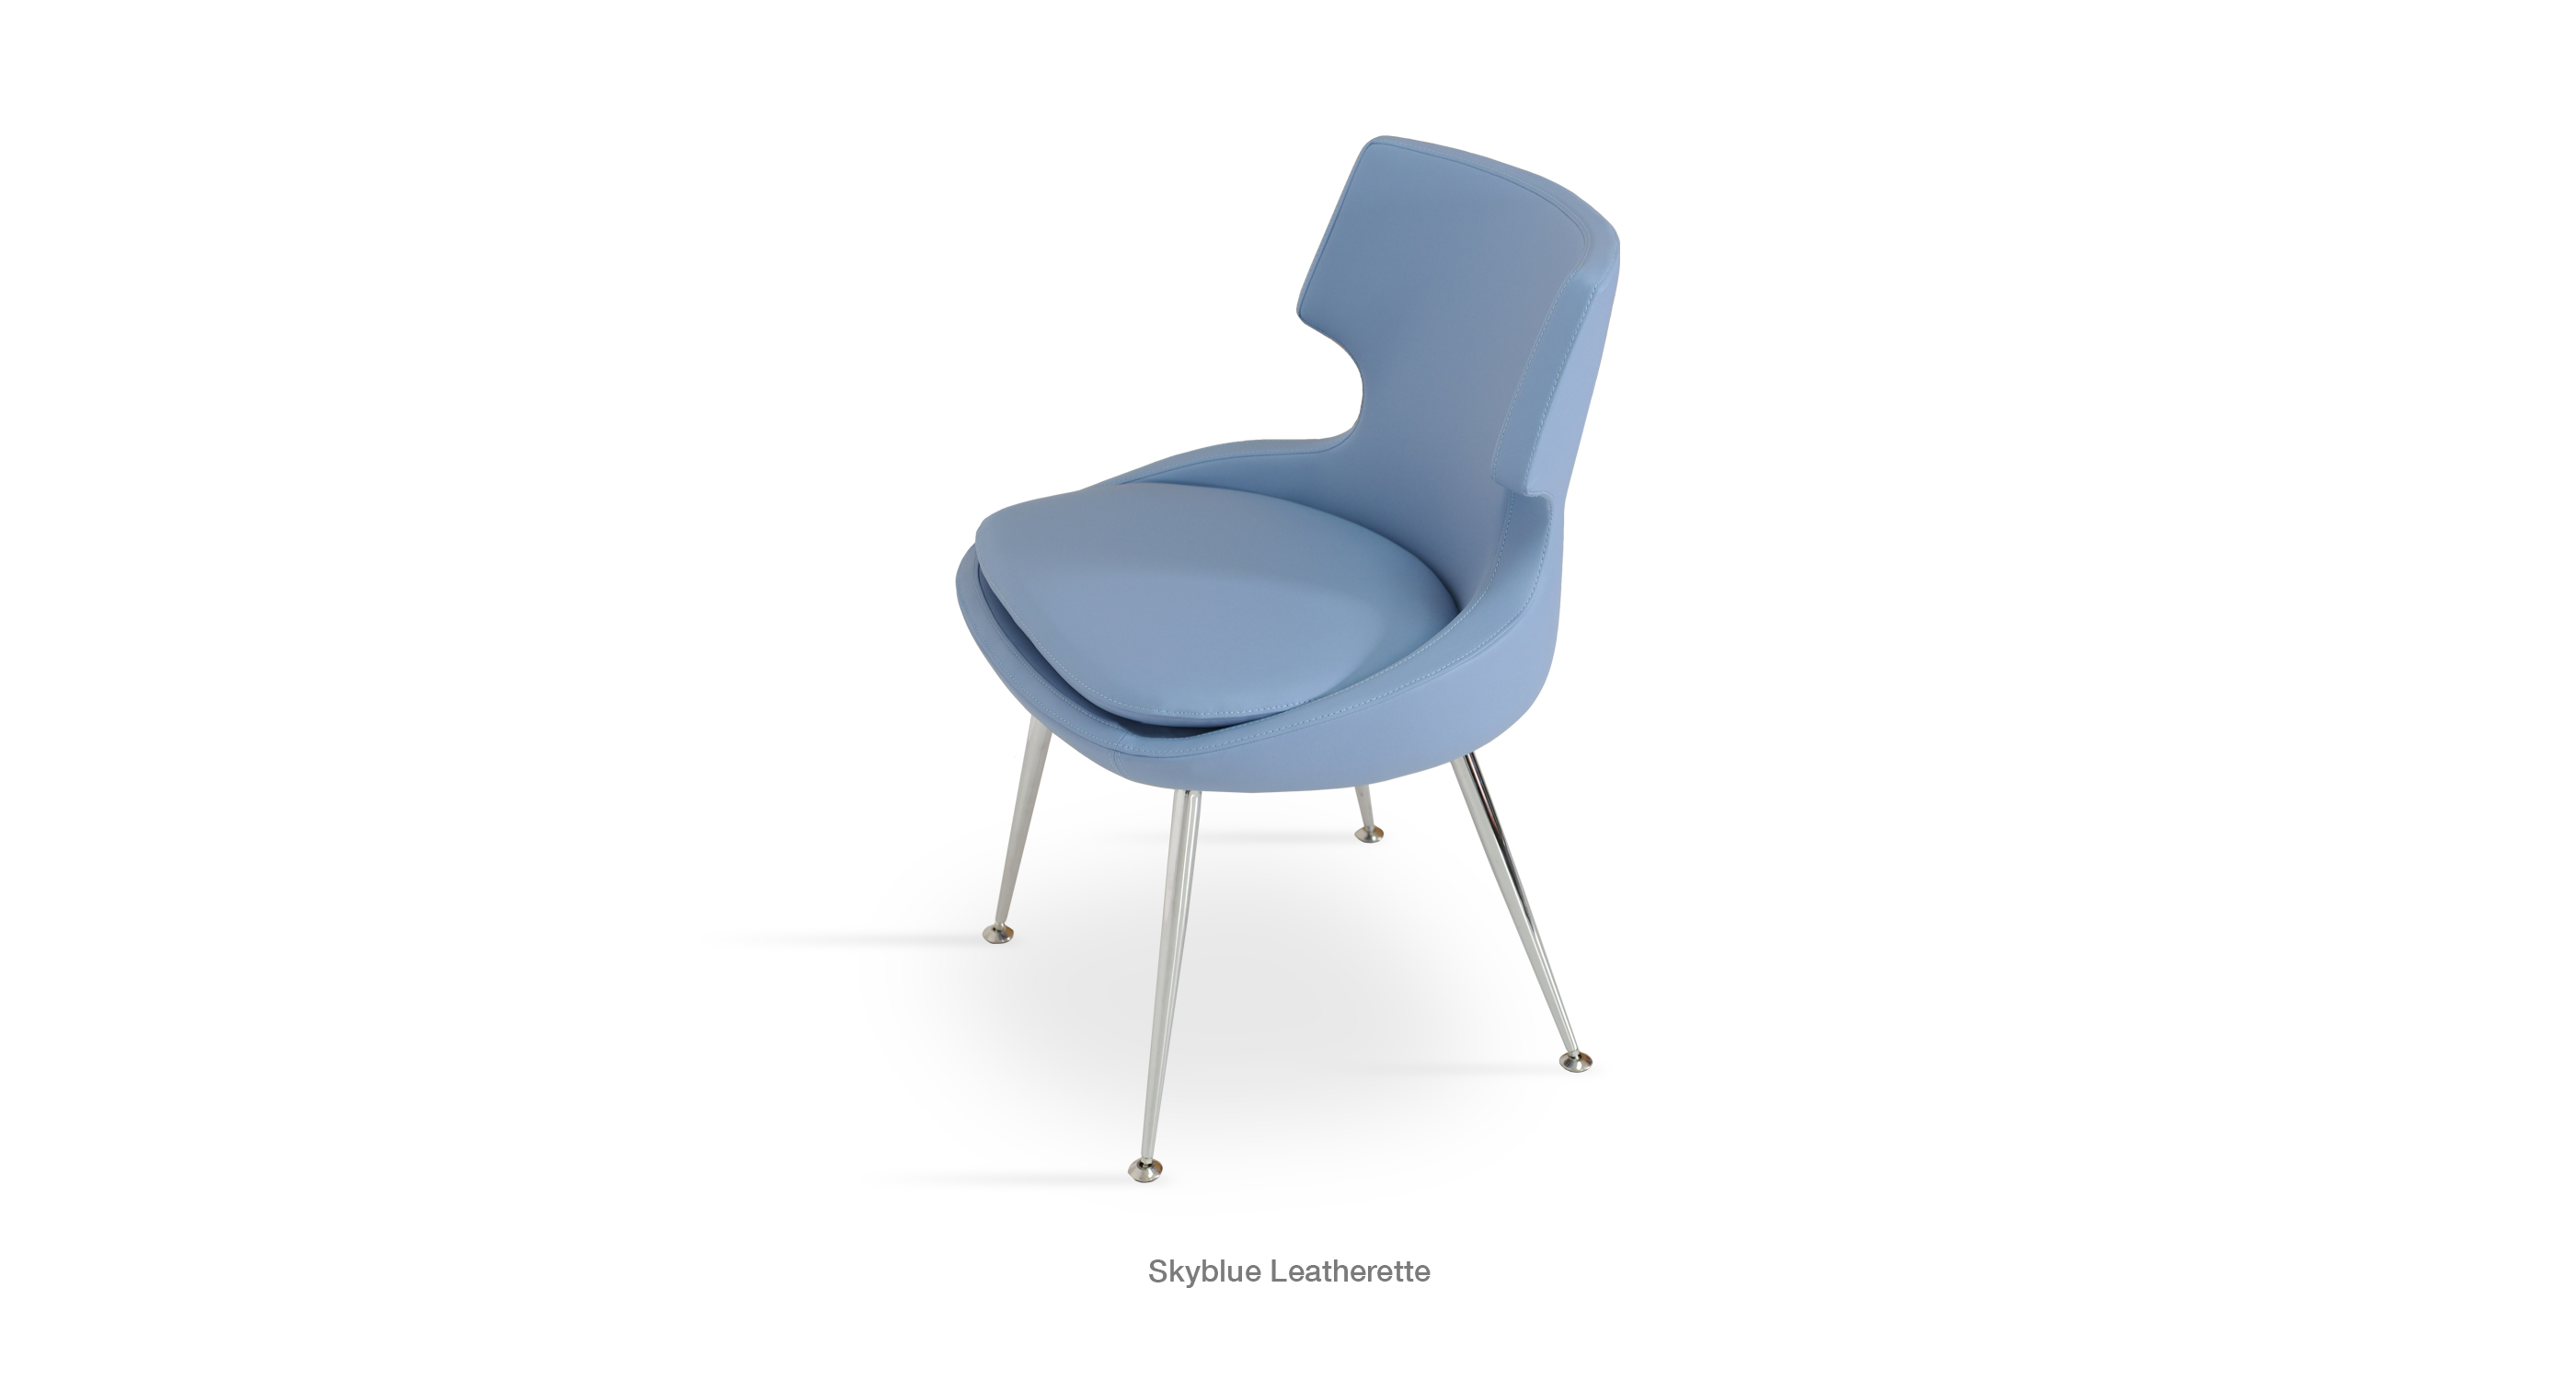 Patara Skyblue Leatherette